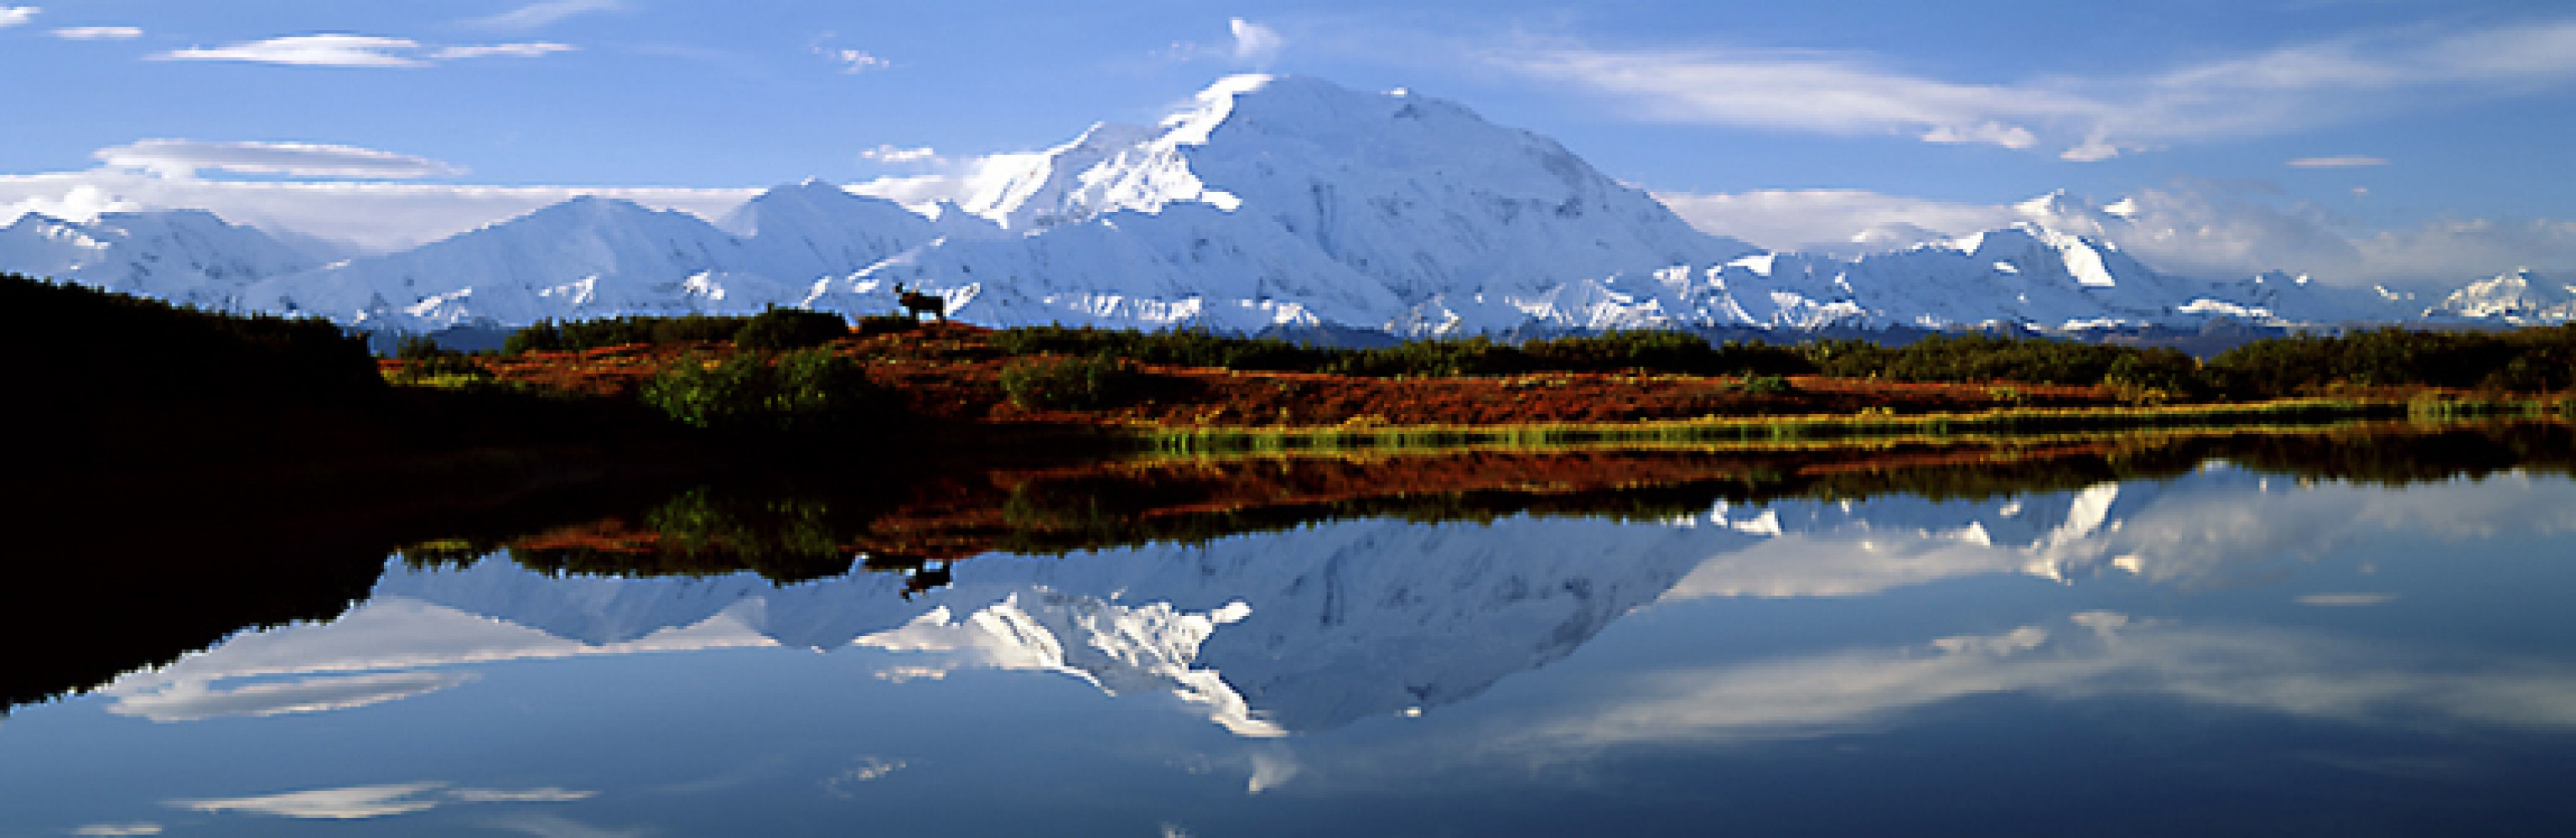 Reflections of Denali 2000 by Thomas Mangelsen